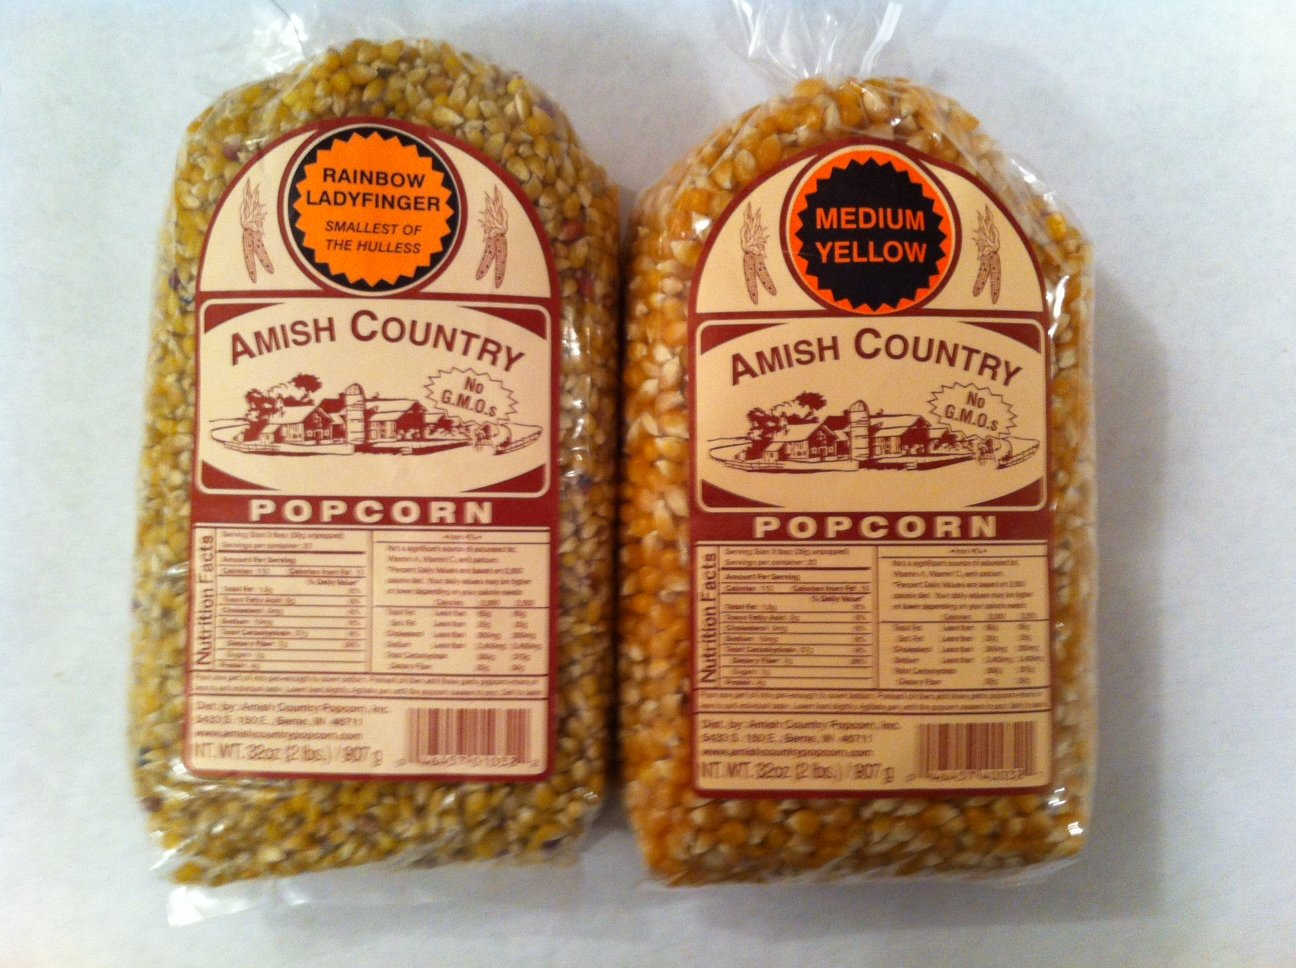 Amish Country Popcorn Variety 2 Bags 2 Lbs Each Total 4 Lbs Non Gmo, Rainbow Ladyfinger, Medium Yellow